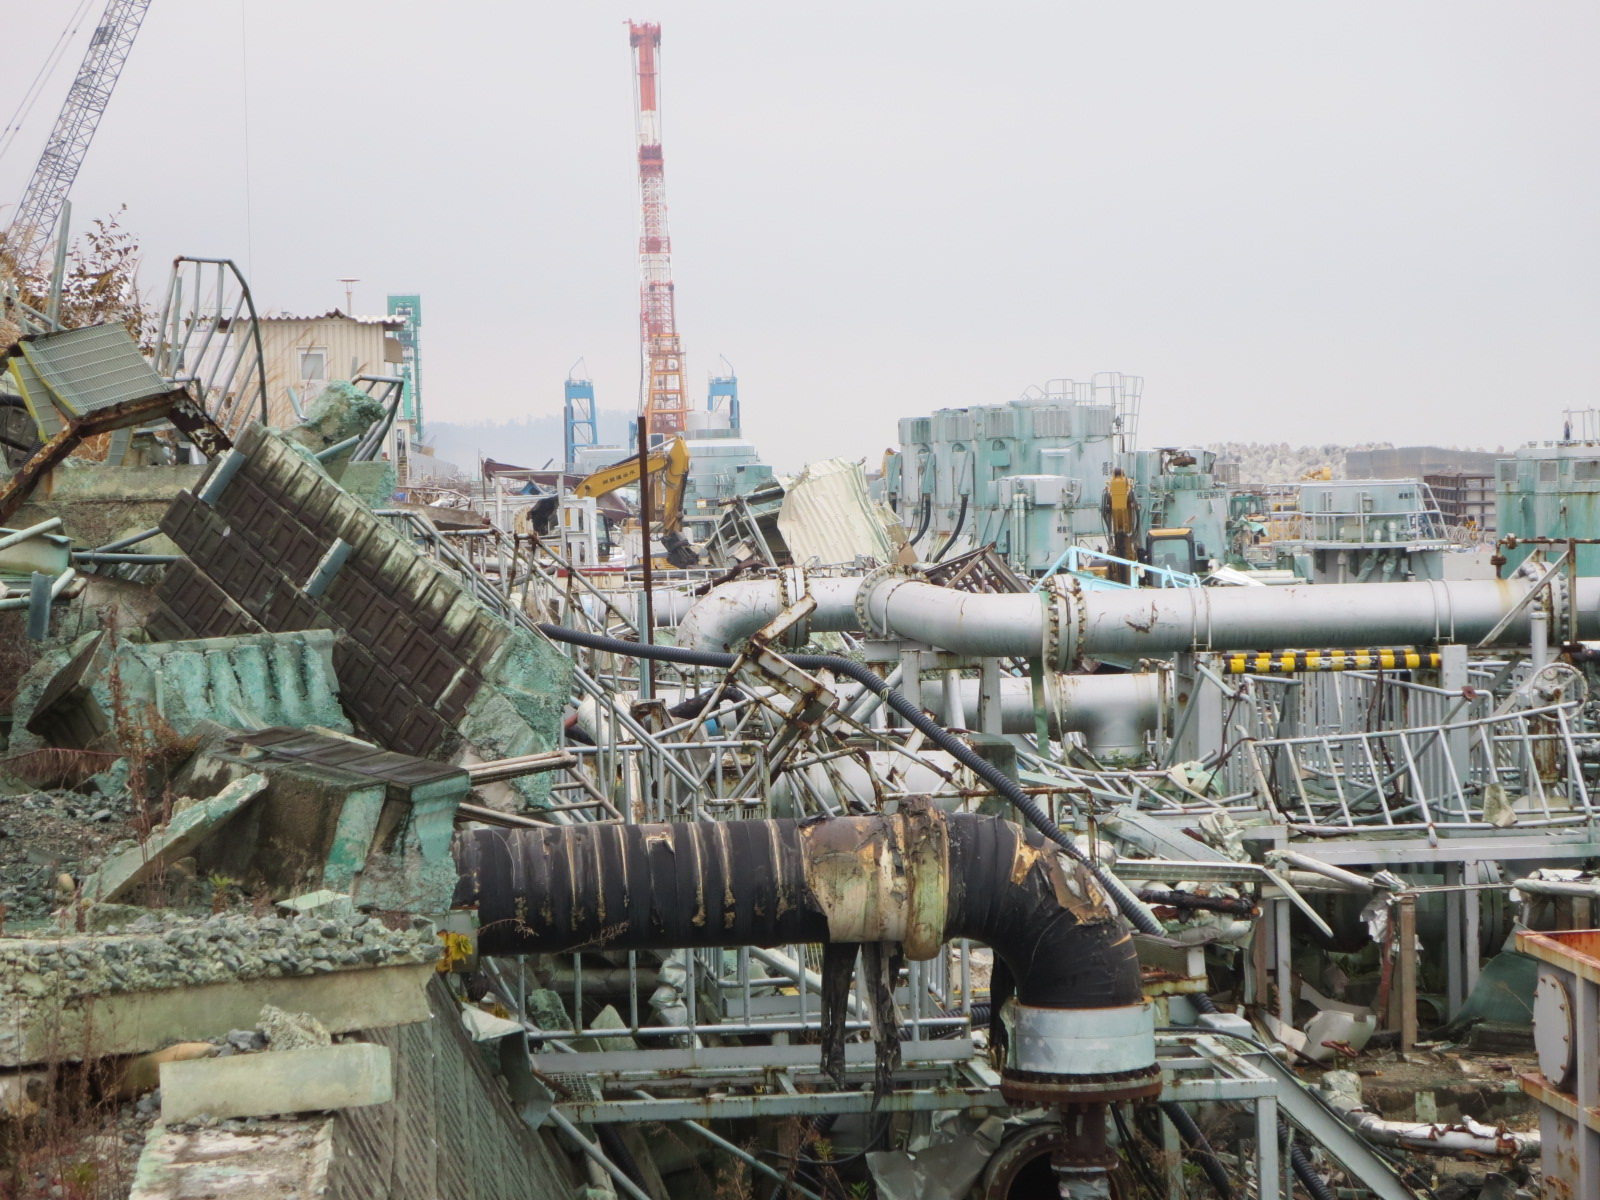 Japan increases support to Fukushima clean up but TEPCO retains management role